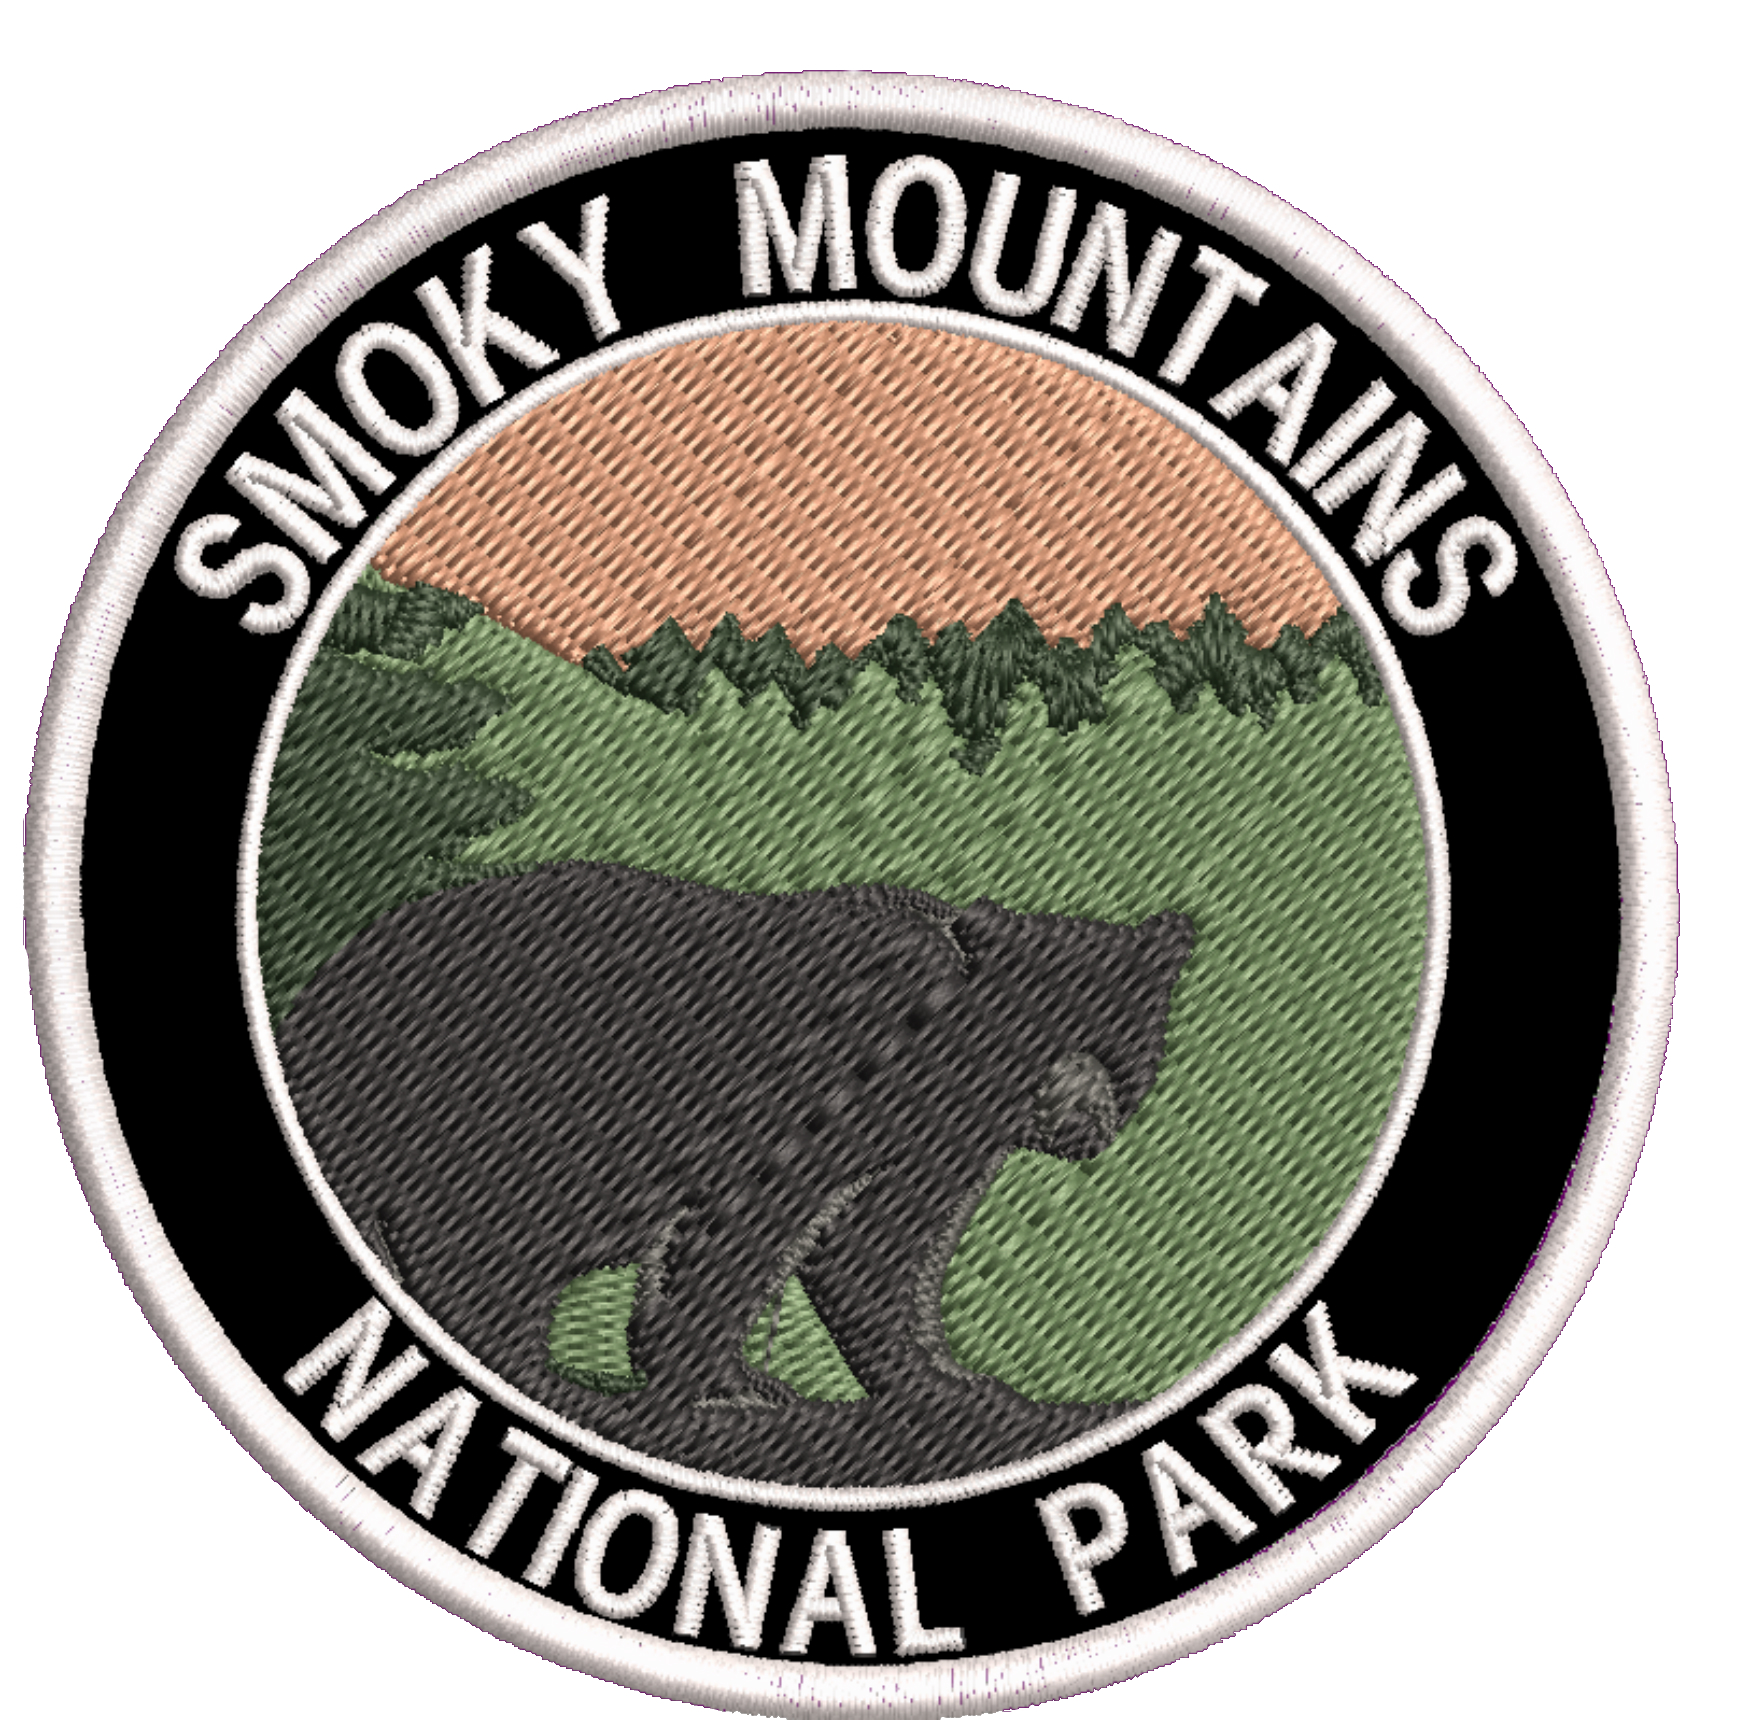 Vacation Tourist Souvenir Wildlife Adventure IronSewn Great Smoky Mountains Backpack Embroidered 3.5 Patch Explore More